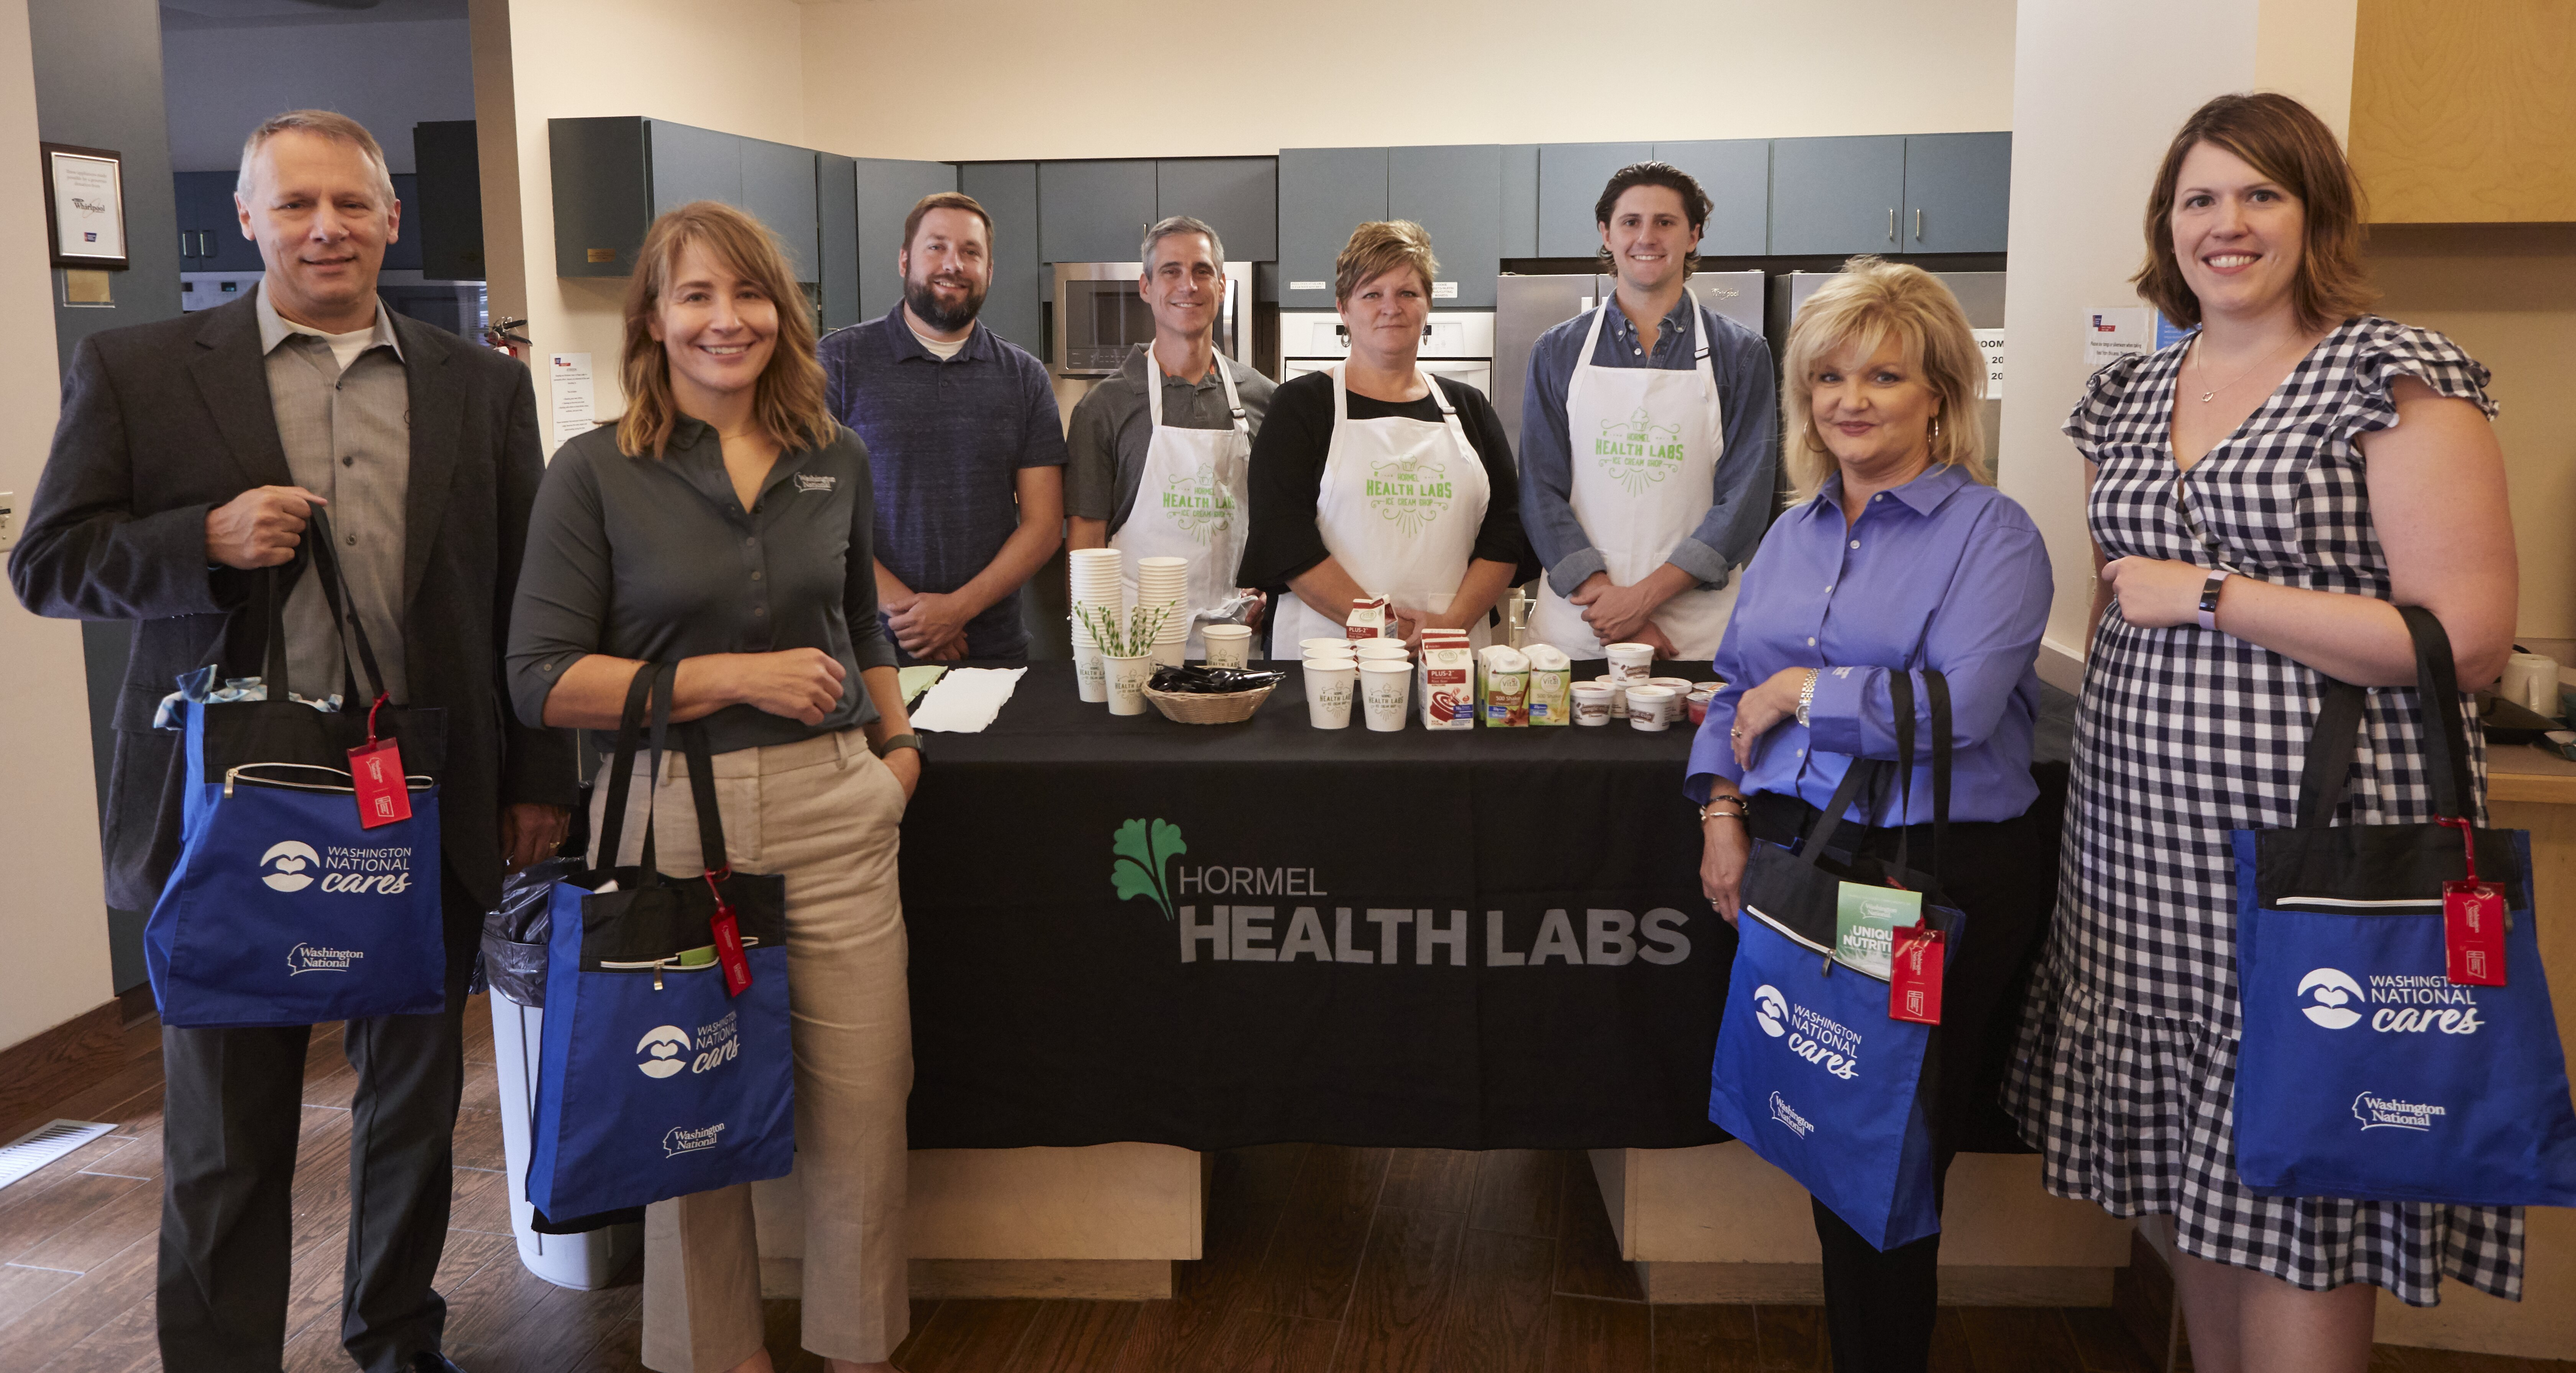 Hormel Health Labs Ice Cream shop at the American Cancer Society Hope Lodge